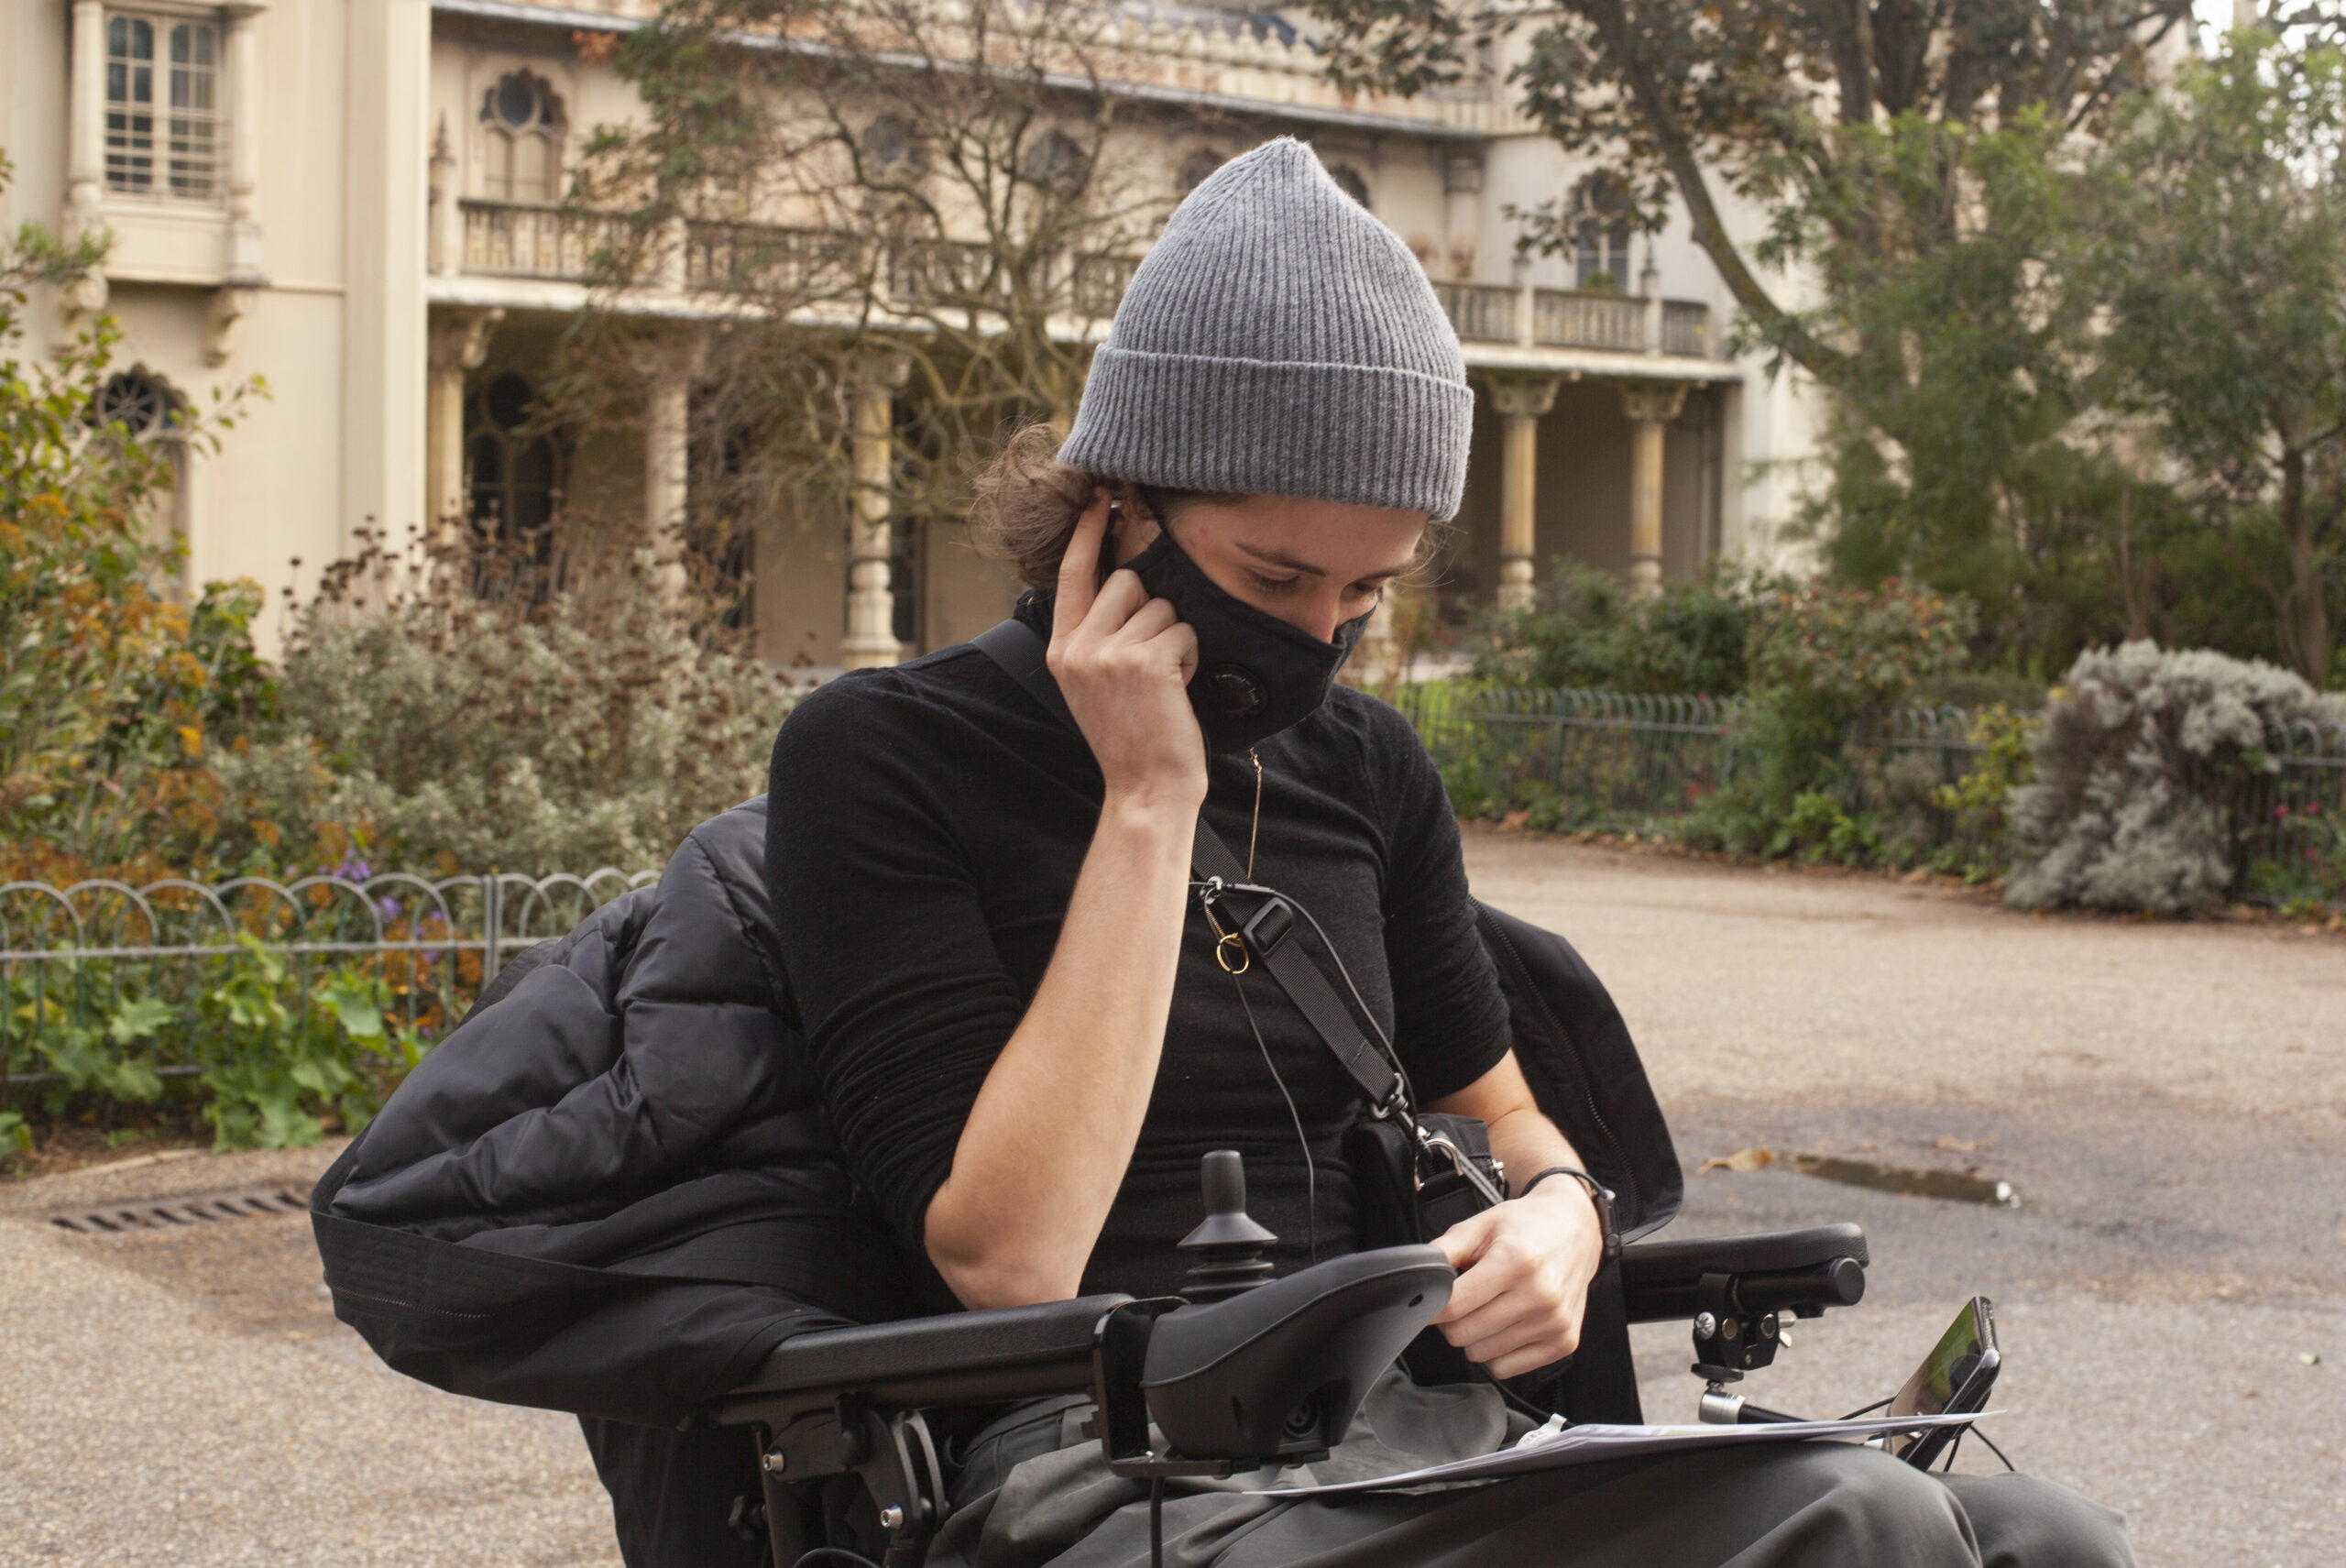 A white person in an electric wheelchair wearing a black face mask, black top and grey beanie hat looks down at a smartphone mounted on their chair, with their right hand holding headphones to one ear.